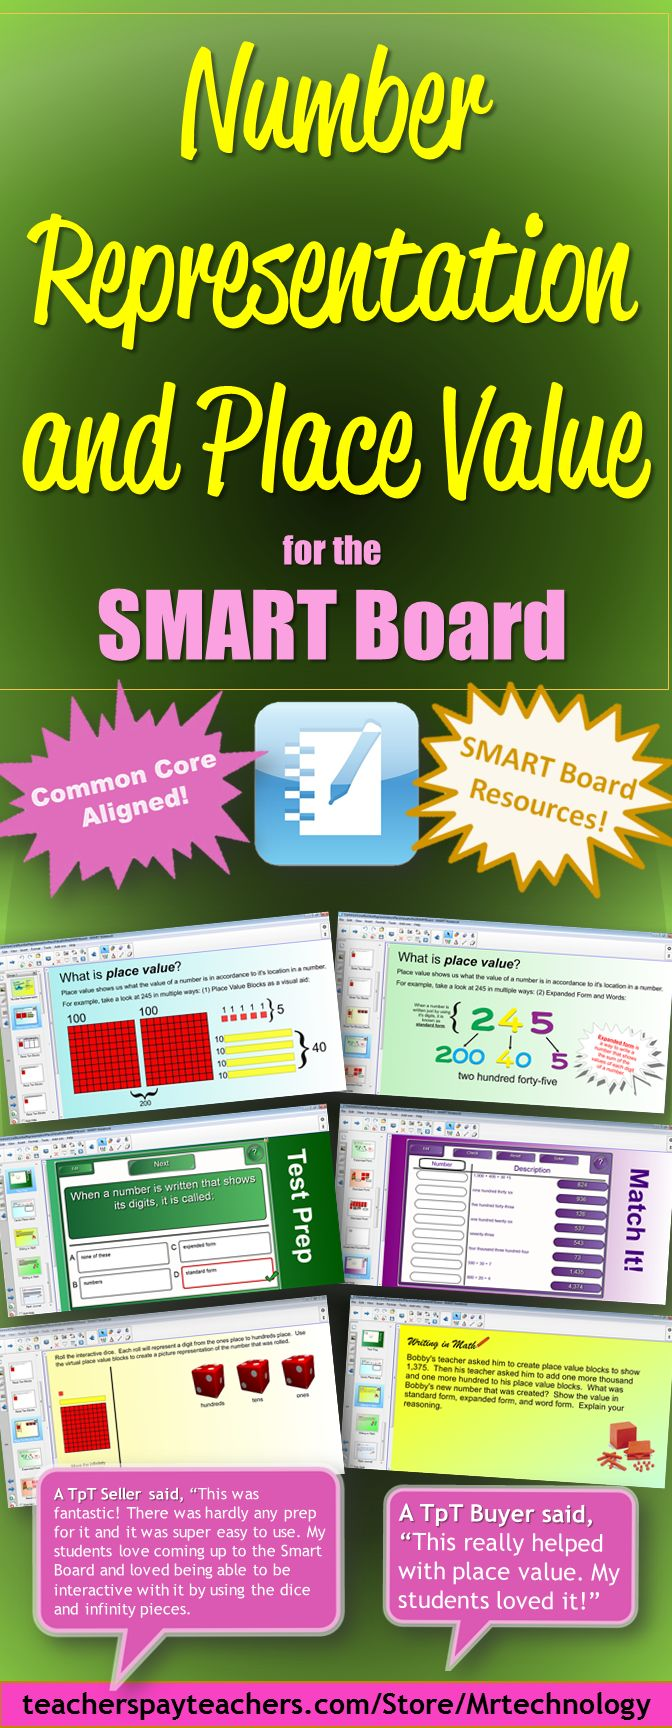 614 best go math lesson plans resources grades 3 4 images on common core number representation place value for the smart board falaconquin